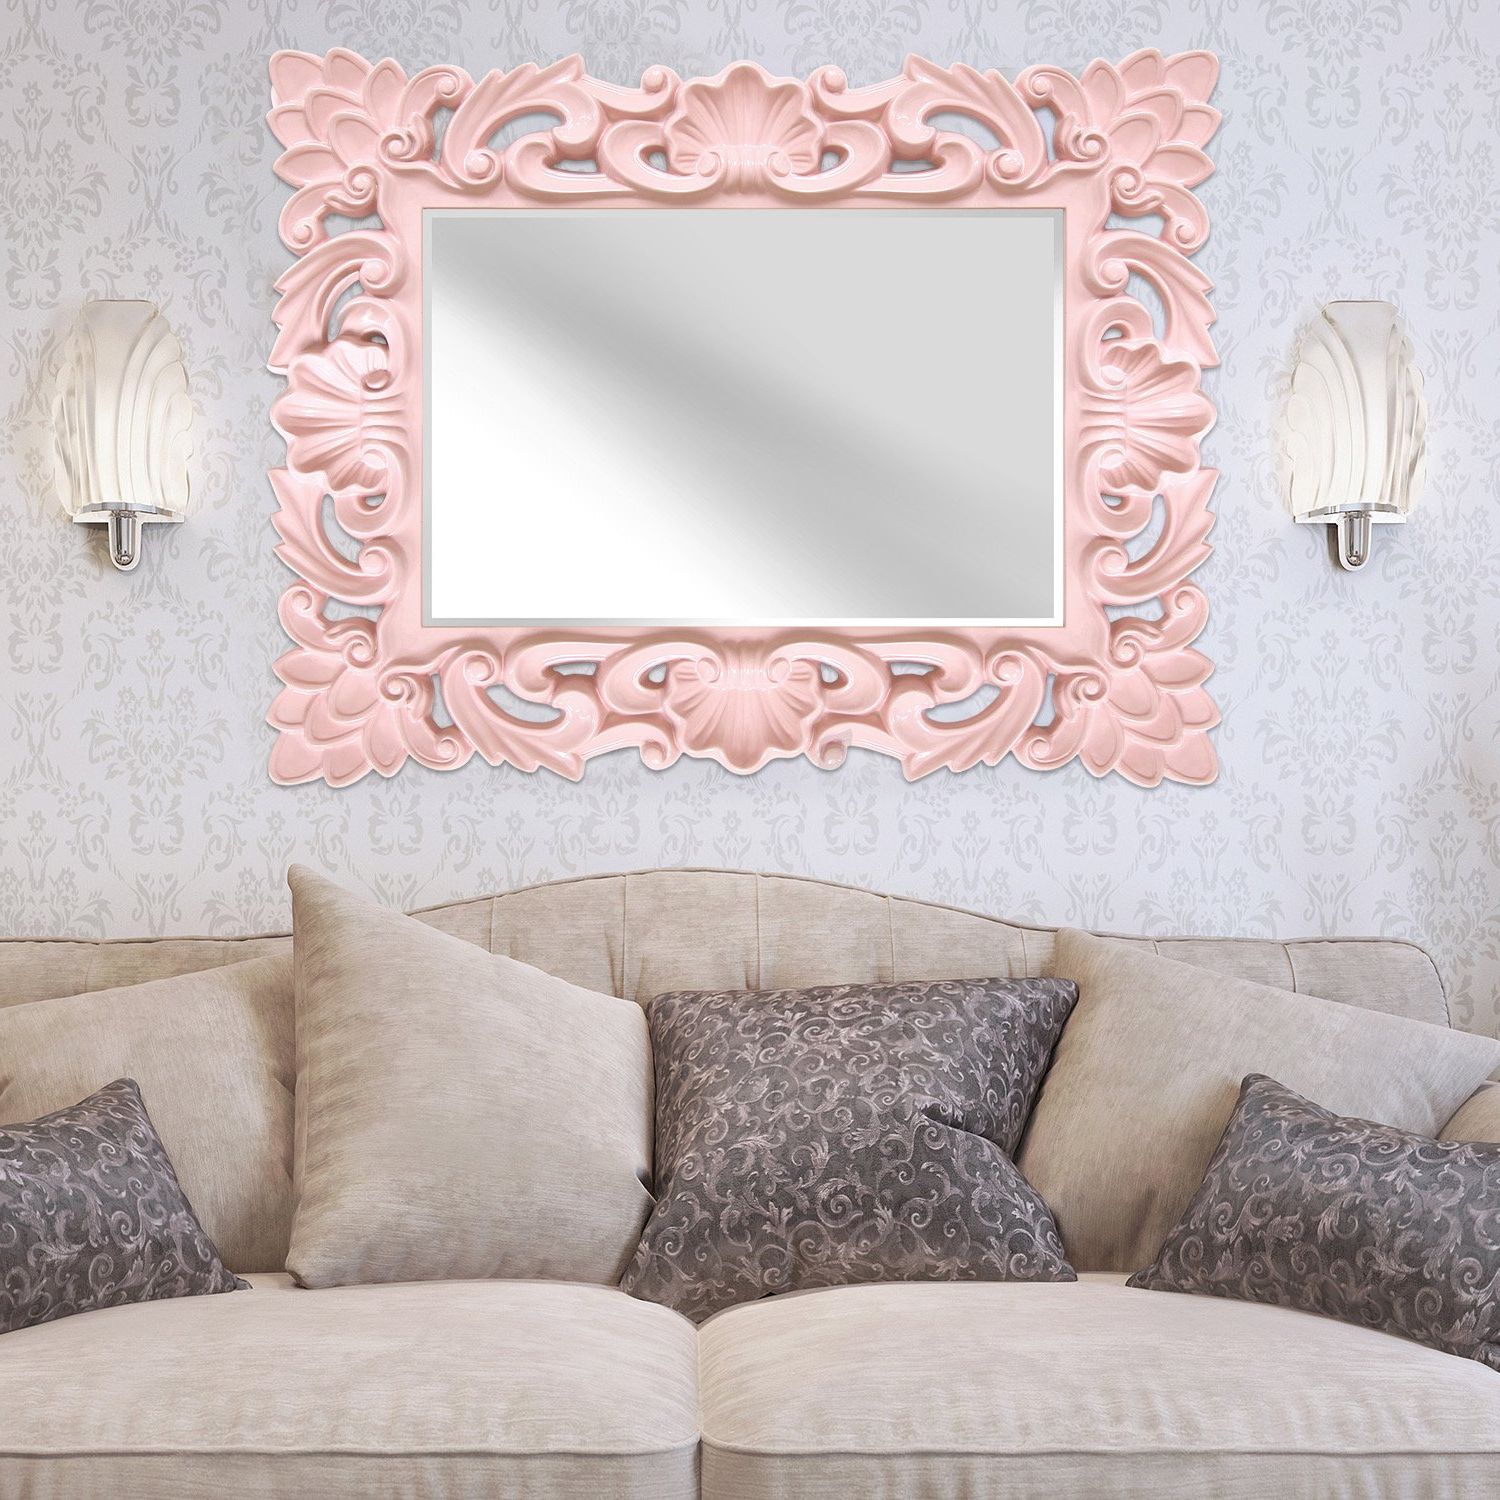 Home Decor Regarding Trendy Pink Wall Mirrors (Gallery 7 of 20)